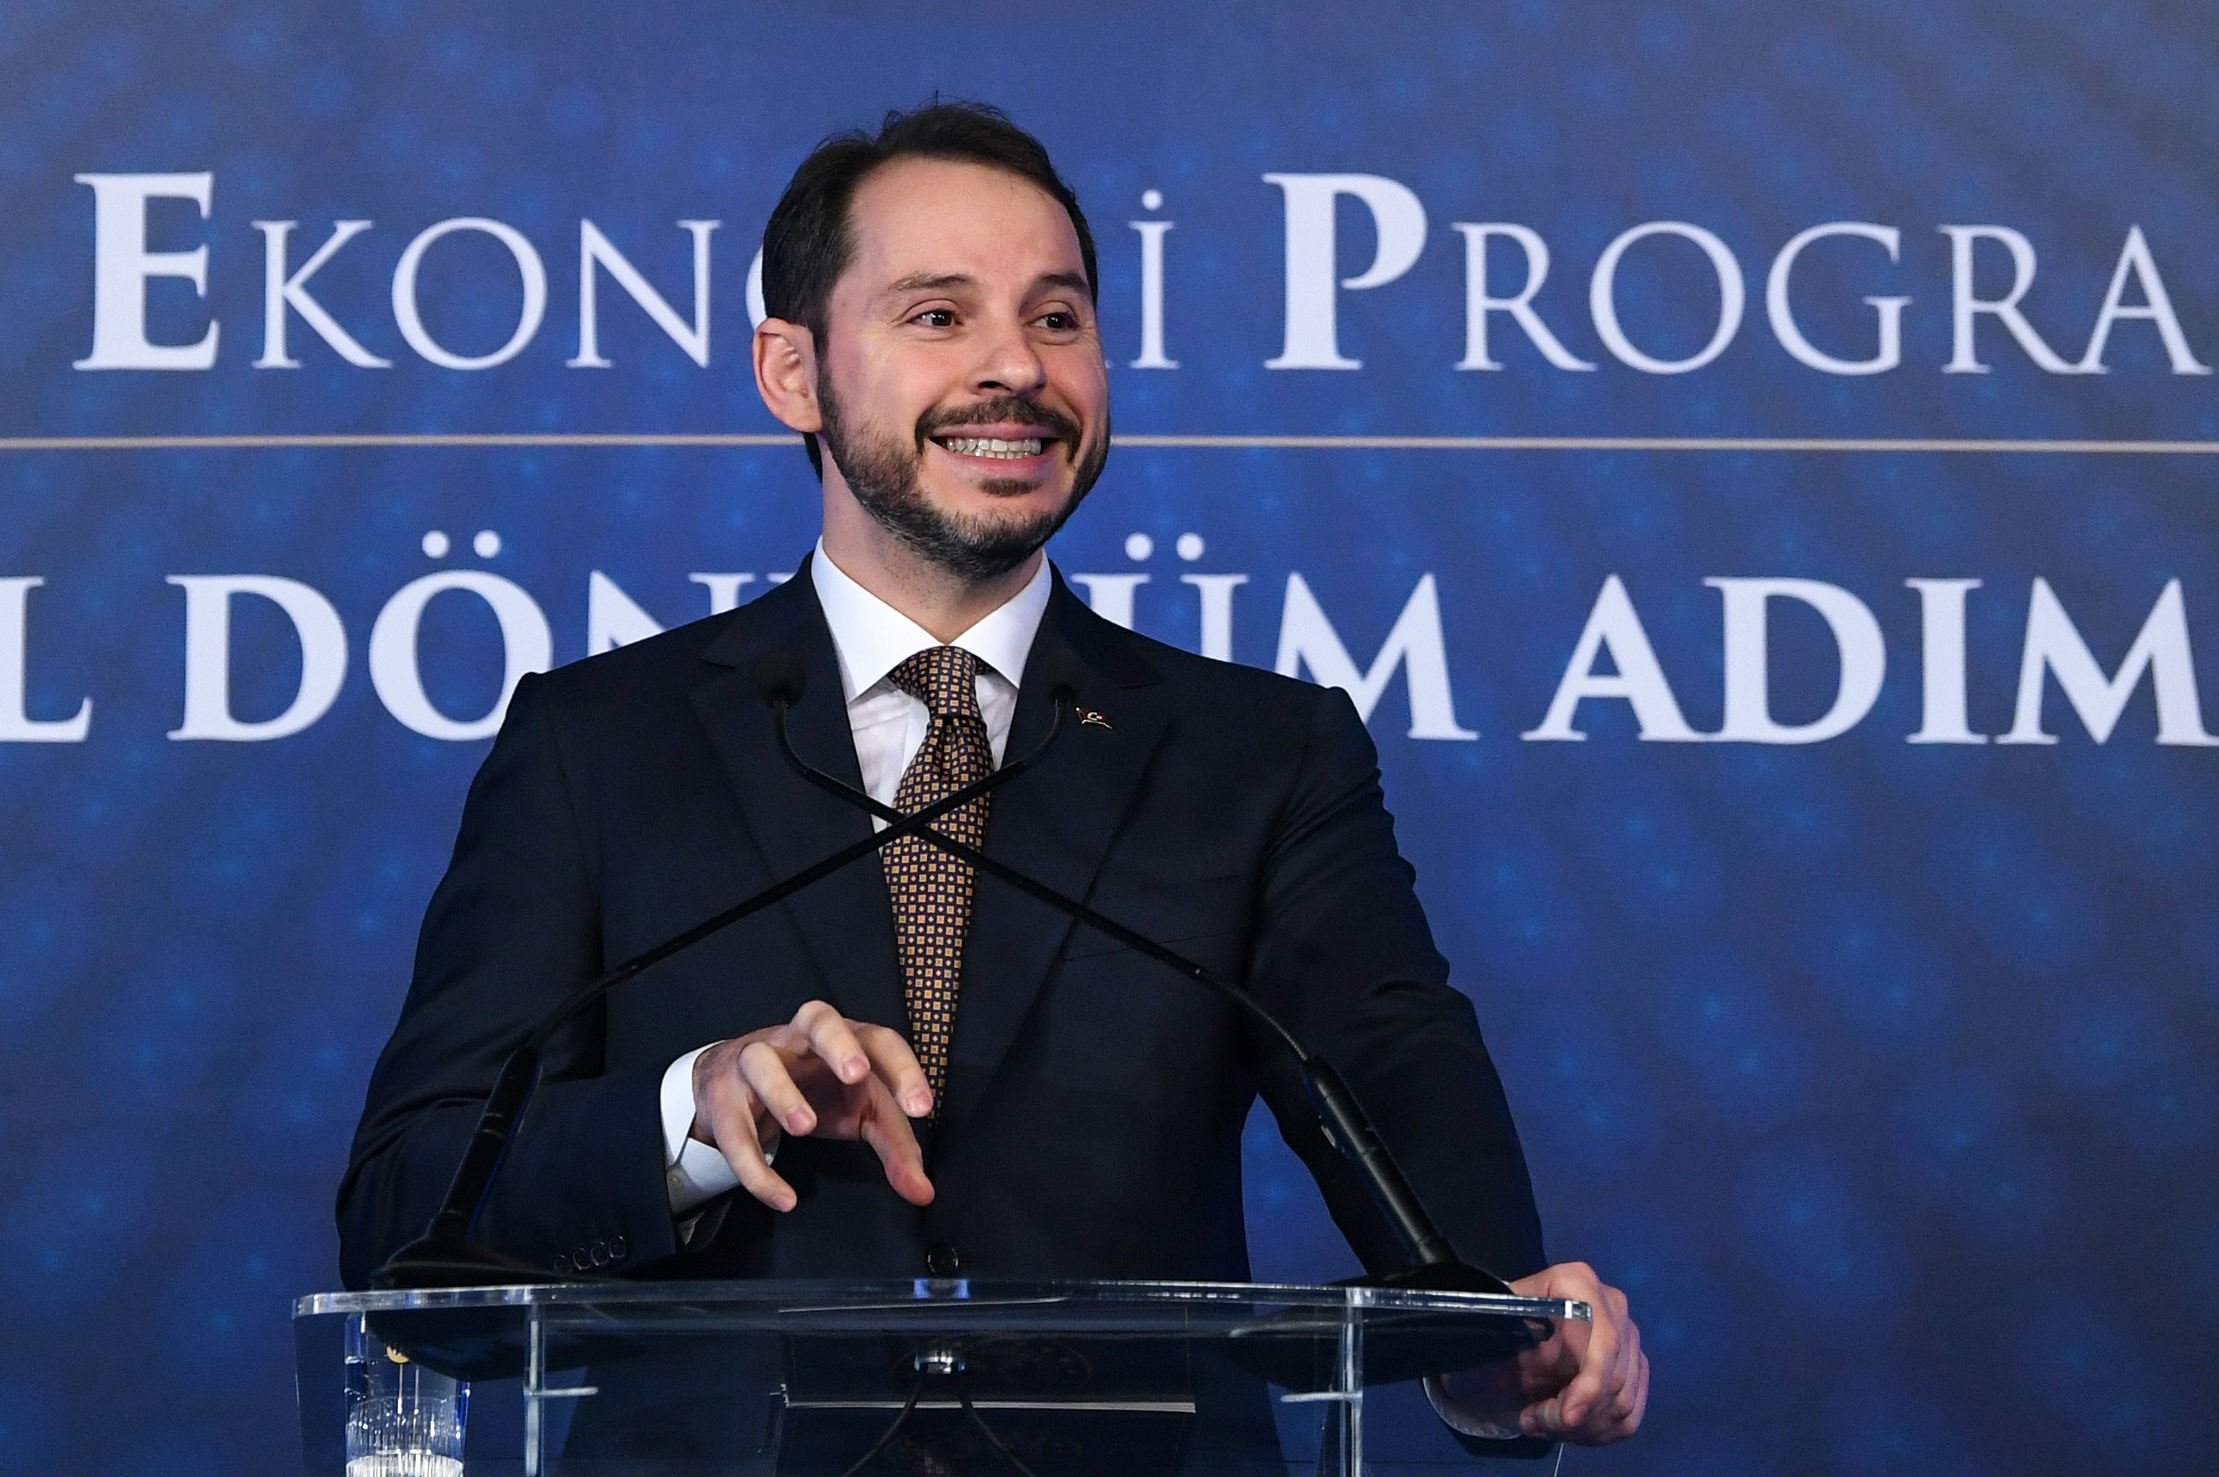 Turkish Treasury and Finance Minister Berat Albayrak addresses a press conference to announce his new economic policy and reforms in Istanbul on 10 April, 2019 (AFP)